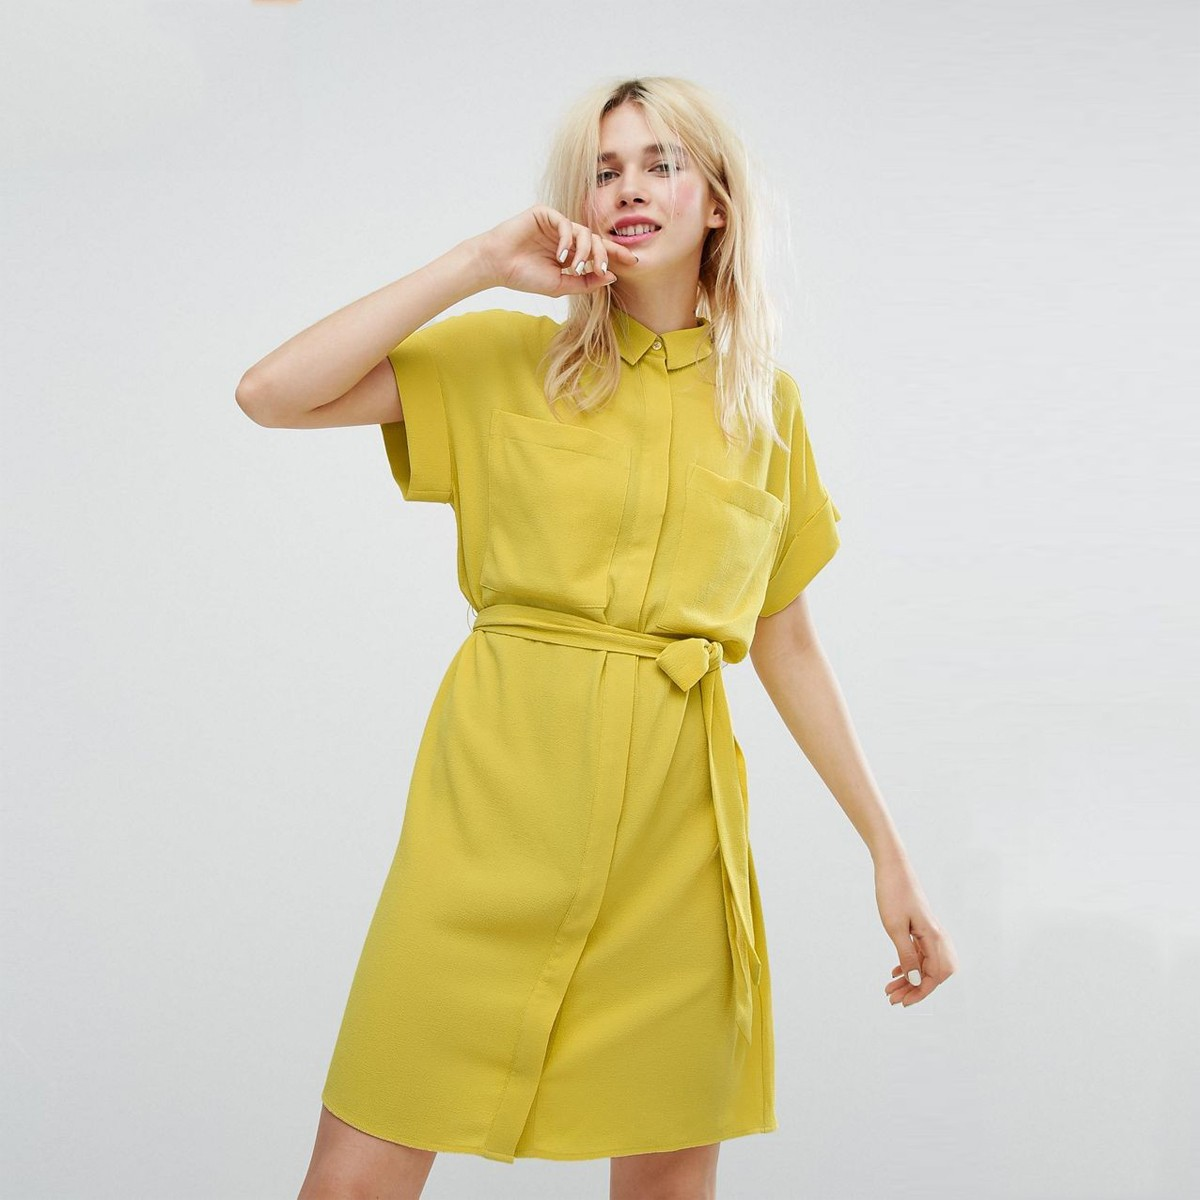 Shirt dress cheap yellow